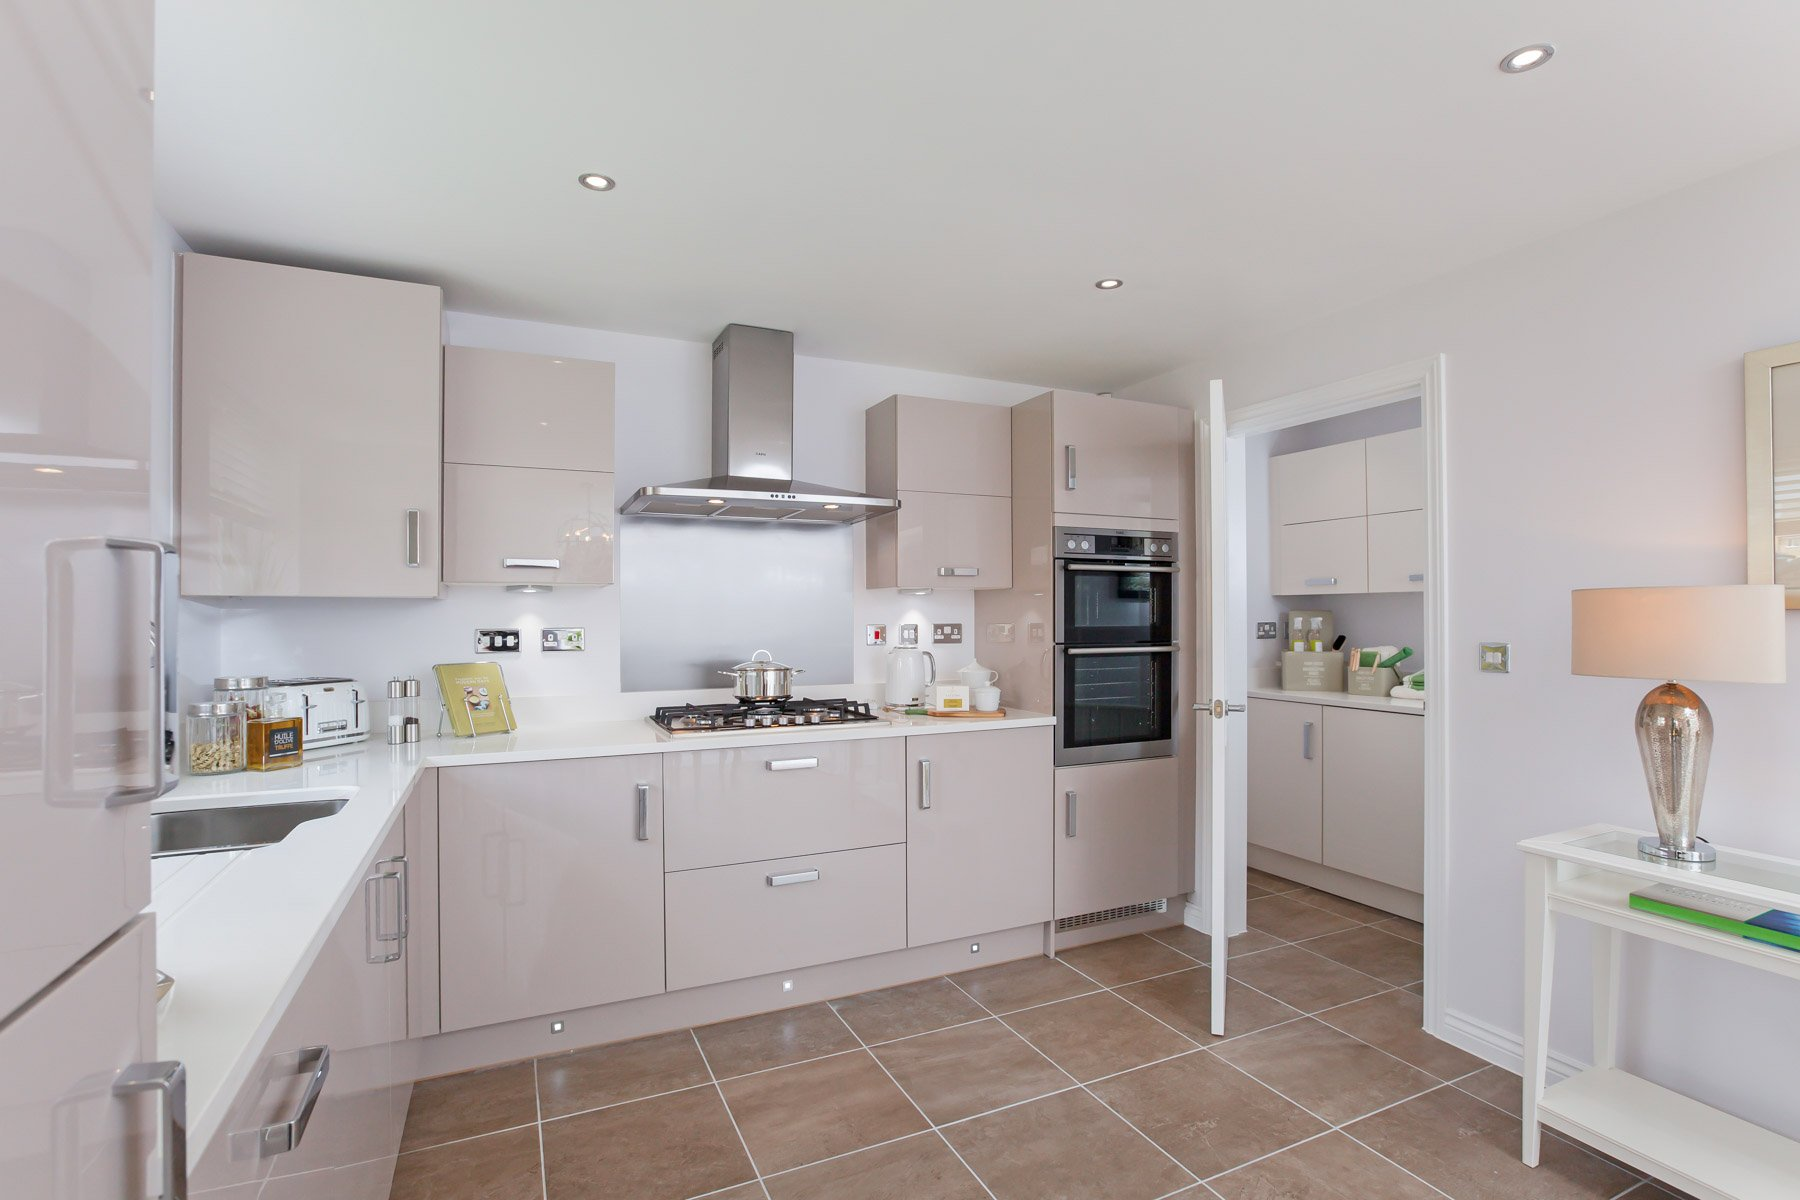 TW Yorkshire_The_Wickets_PA44_Midford_Kitchen_2